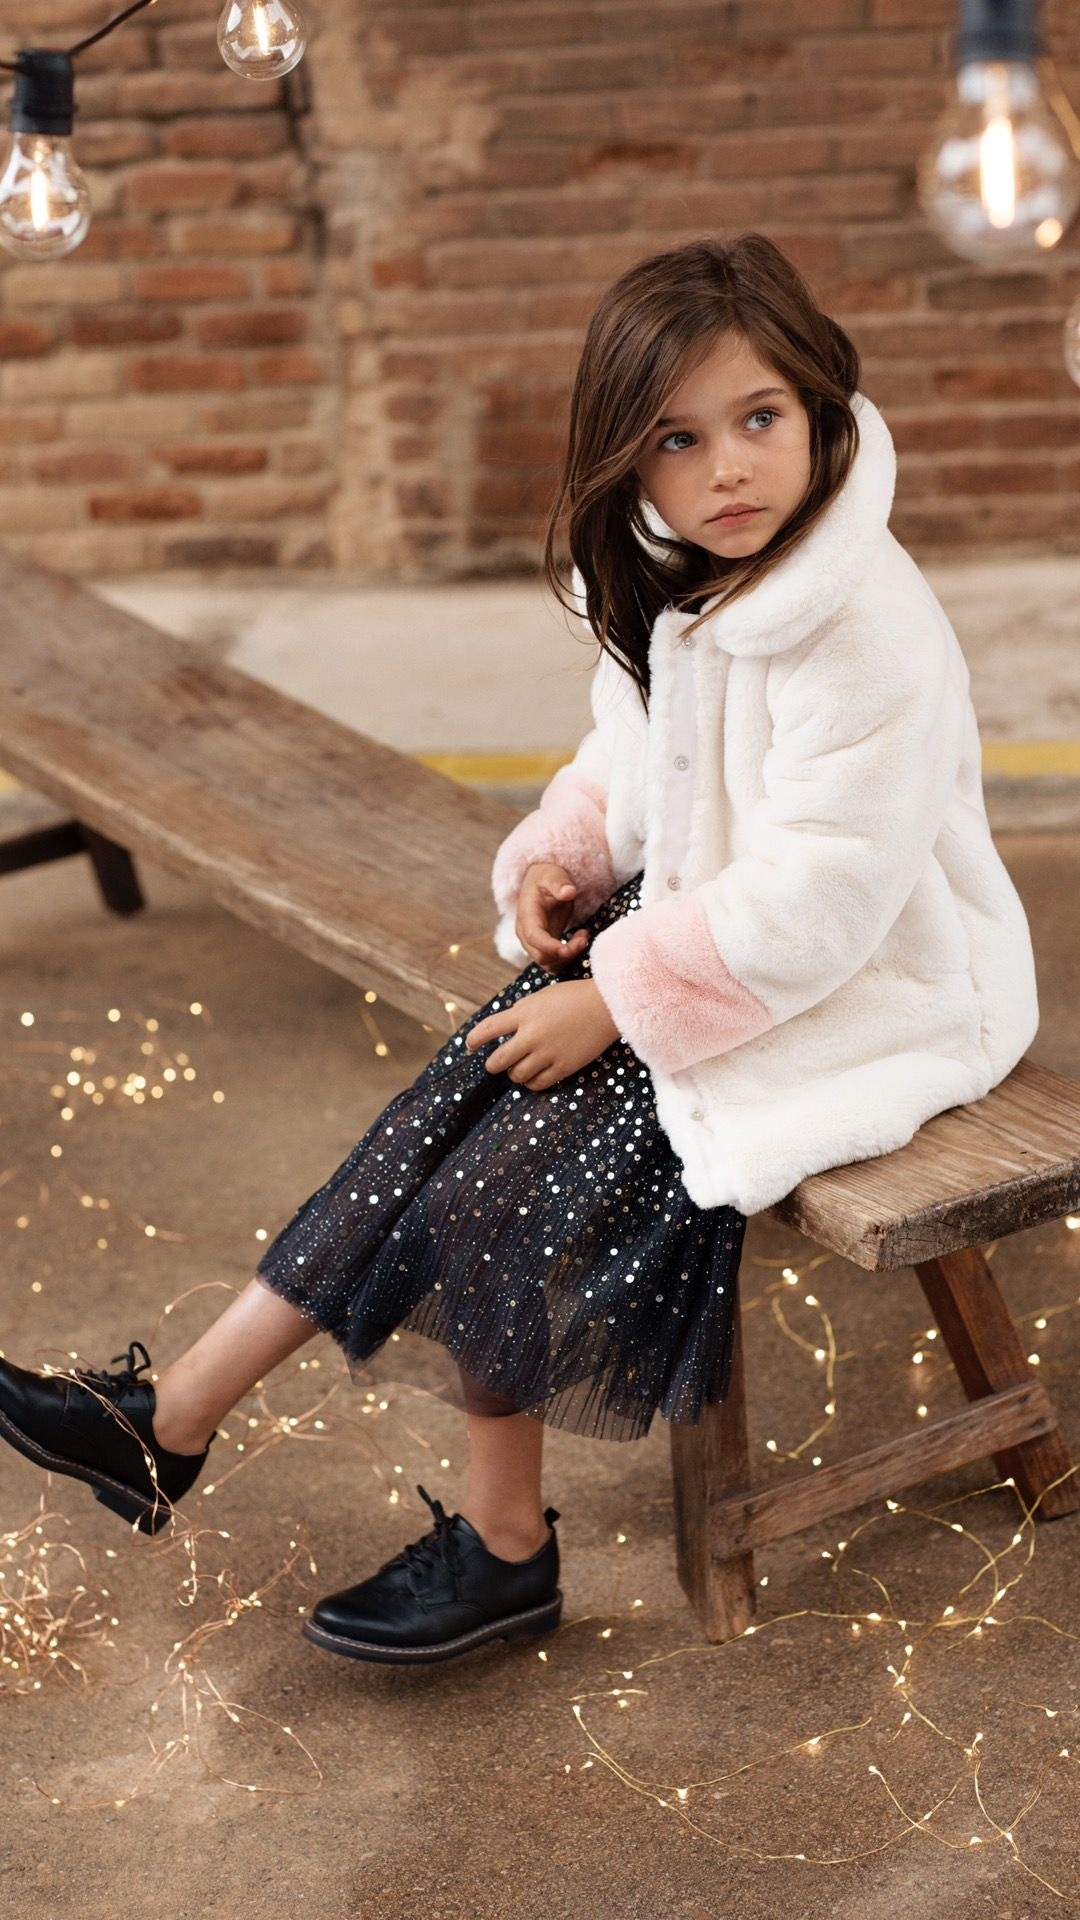 eb6eaf66d Dazzling looks to dress up your little ones!